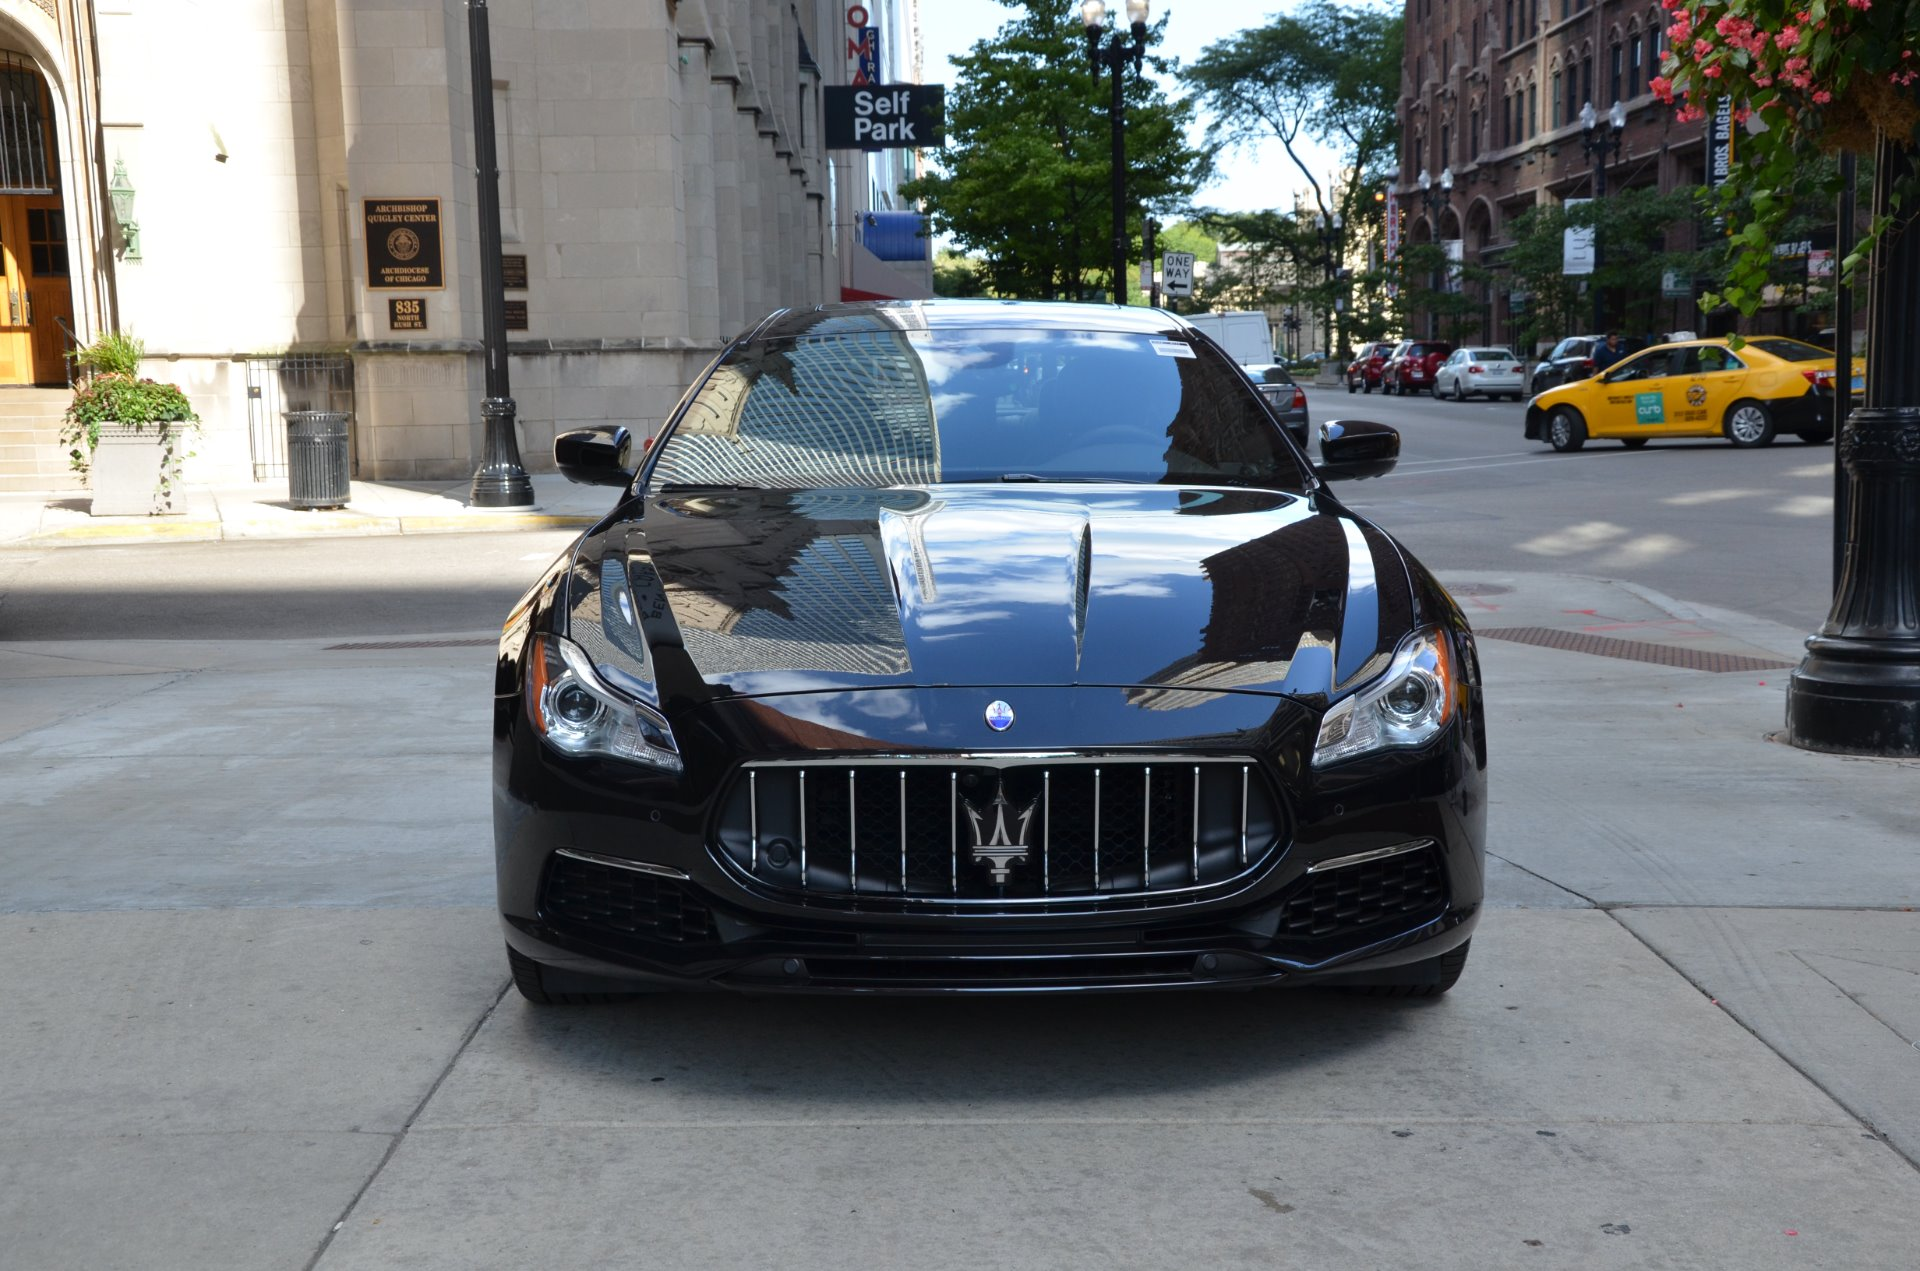 2017 maserati quattroporte s q4 stock m522 for sale near chicago il il maserati dealer. Black Bedroom Furniture Sets. Home Design Ideas